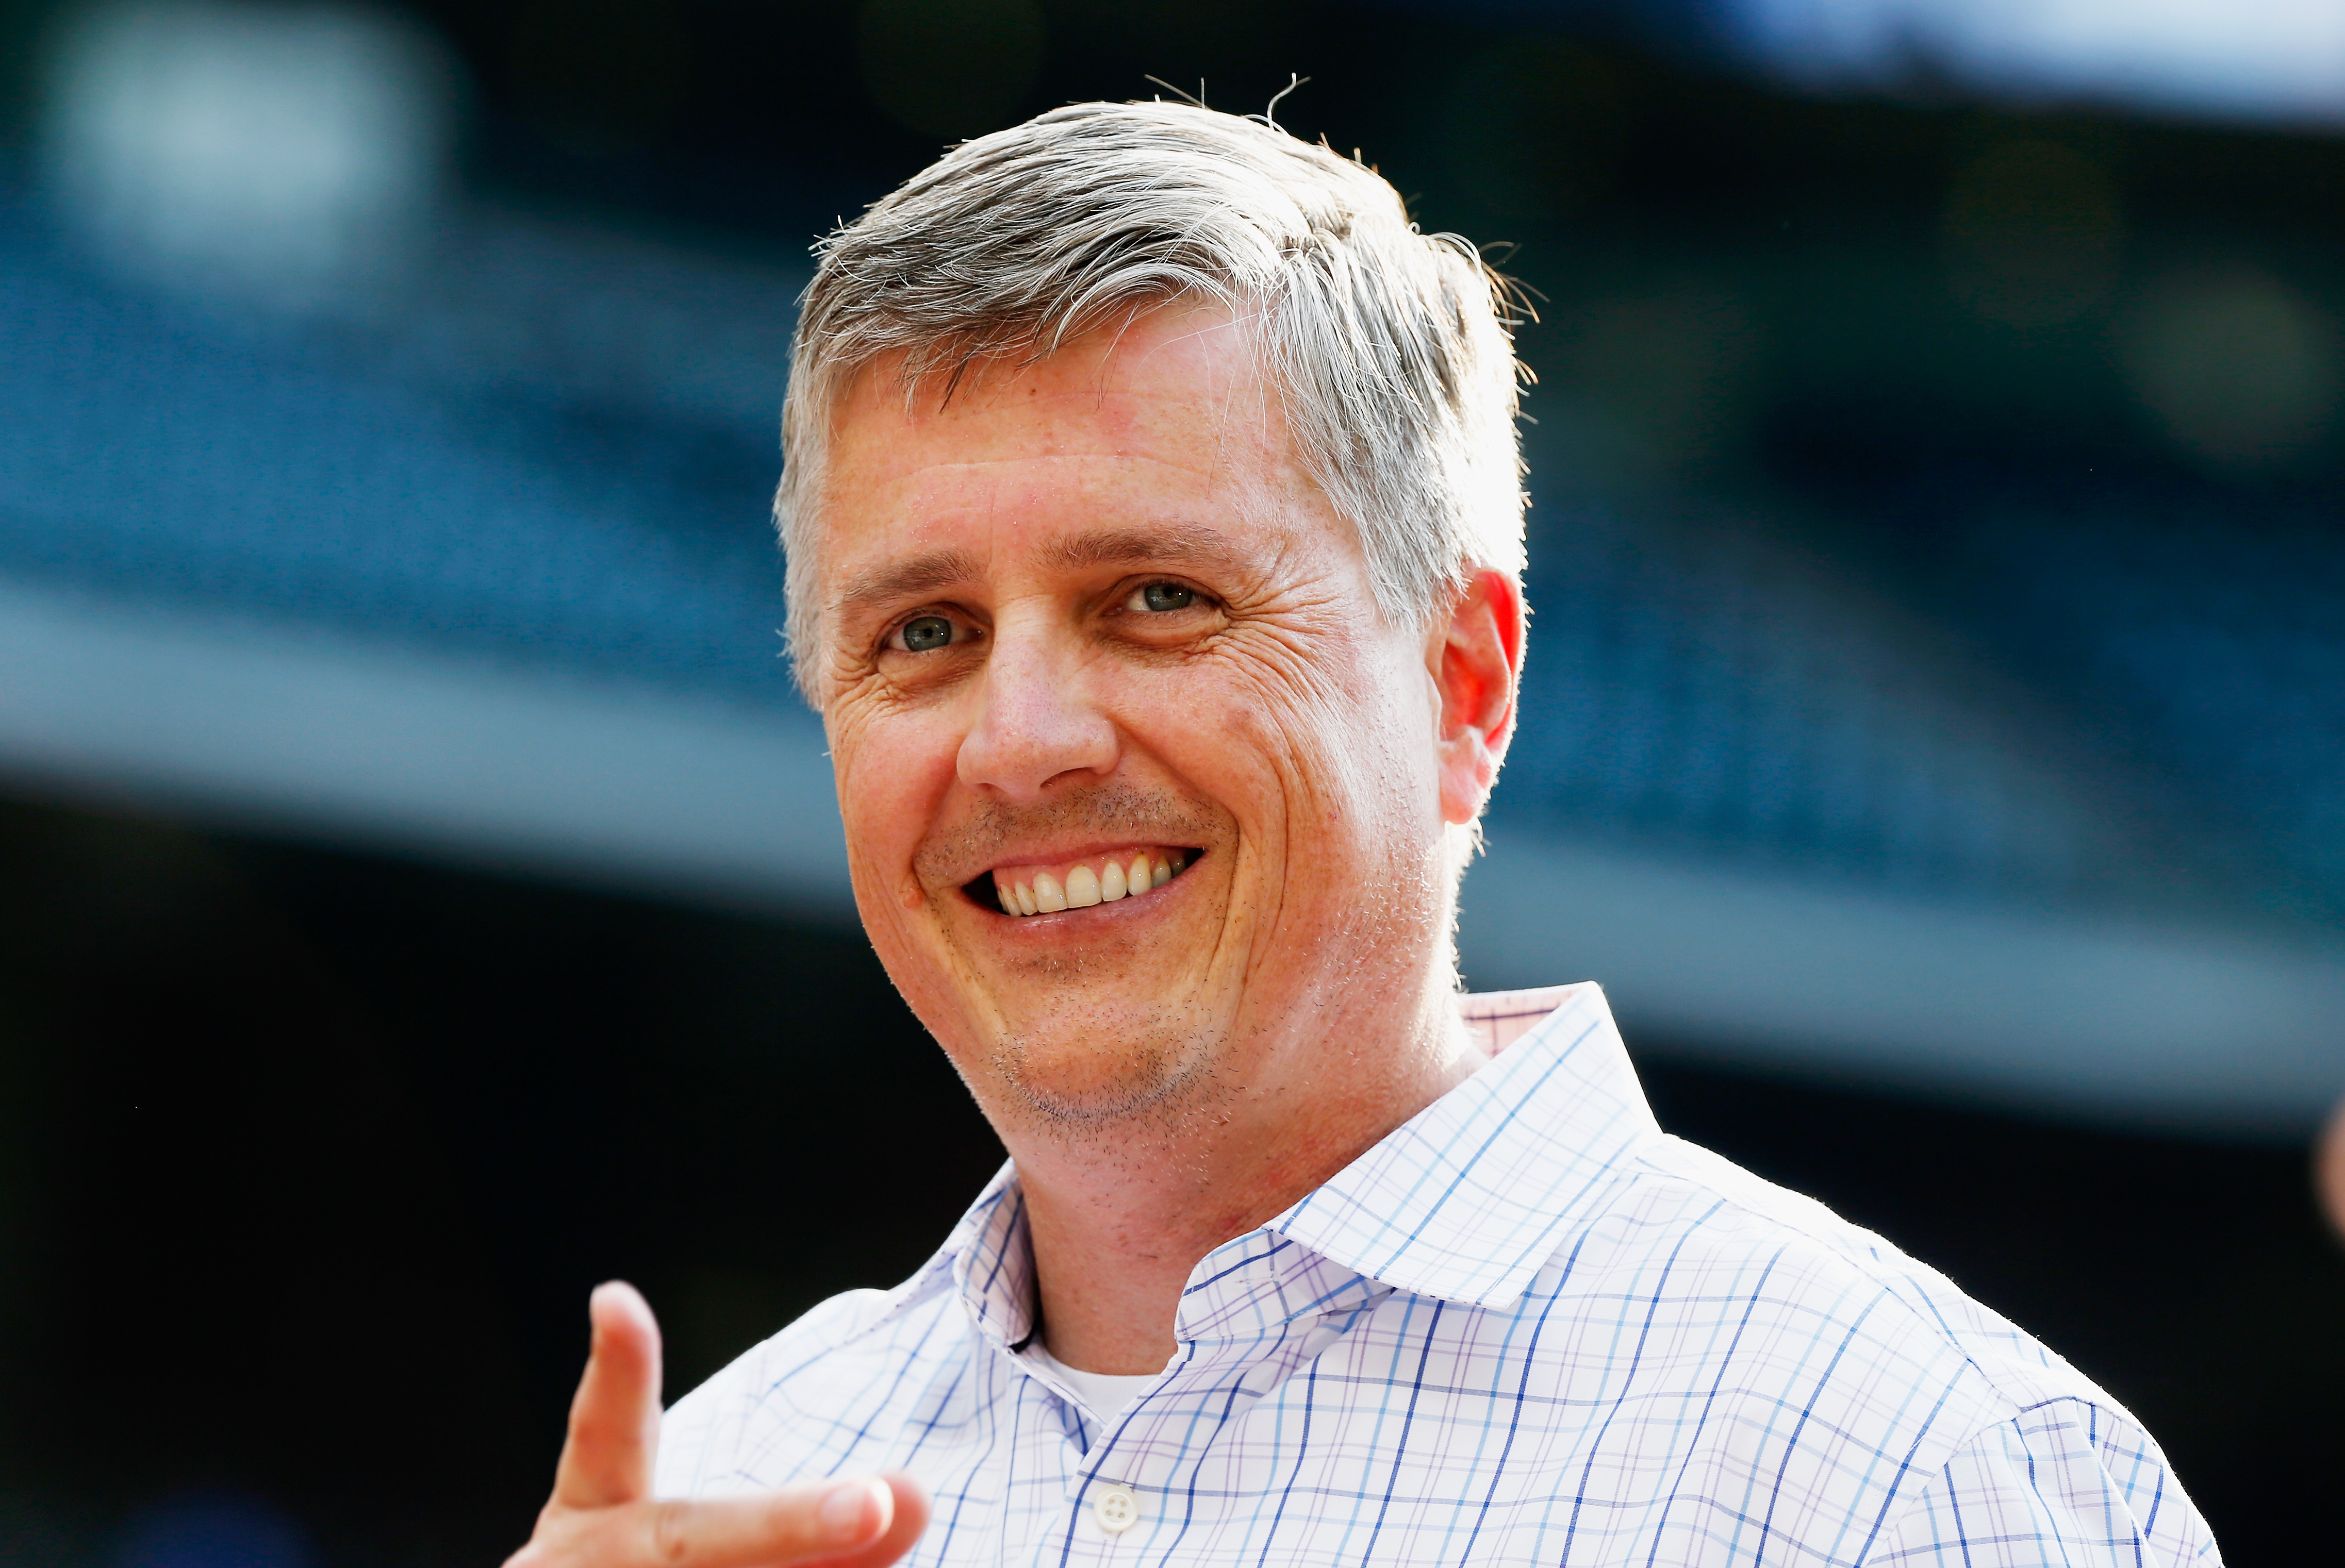 HOUSTON, TX - JUNE 02: Houston Astros general manager Jeff Luhnow waits on the field prior to the start of their game against the Baltimore Orioles at Minute Maid Park on June 2, 2015 in Houston, Texas. (Photo by Scott Halleran/Getty Images)